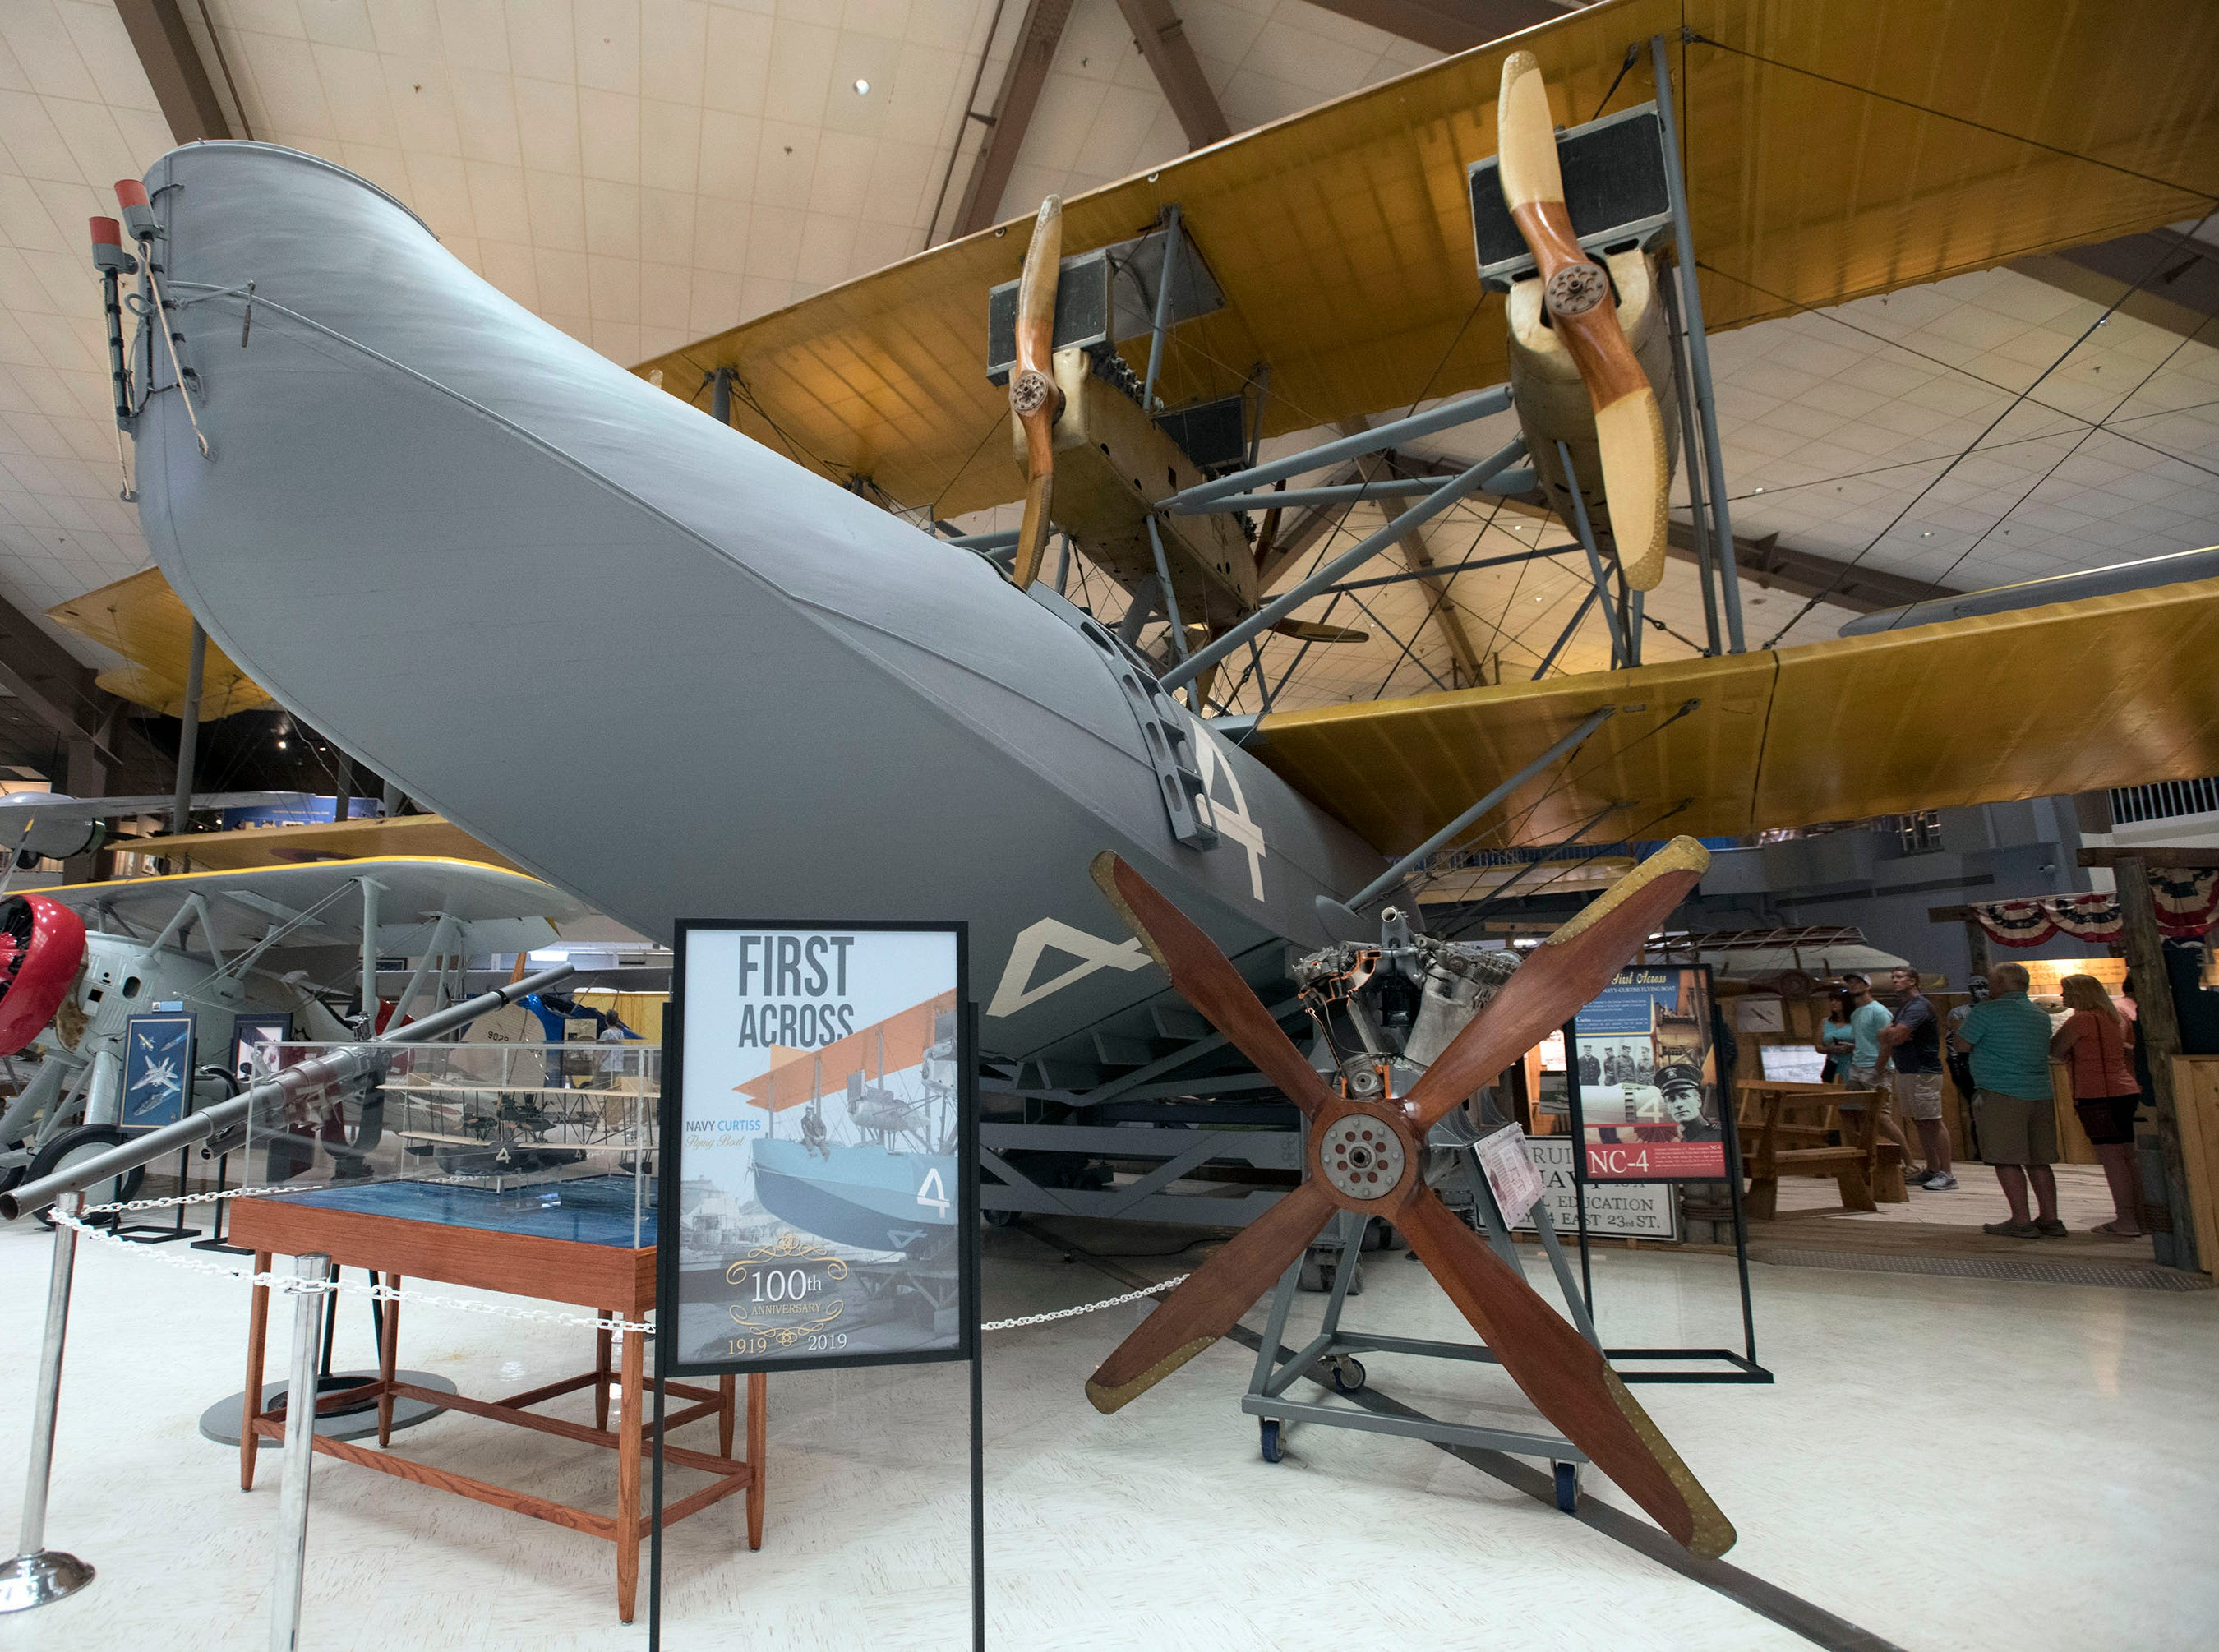 Visitors can get a good look at the NC-4 seaplane on display at the National Naval Aviation Museum on Thursday, May 9, 2019. The National Naval Aviation Museum is celebrating the 100th anniversary of the Navy's flight across the Atlantic Ocean in May.